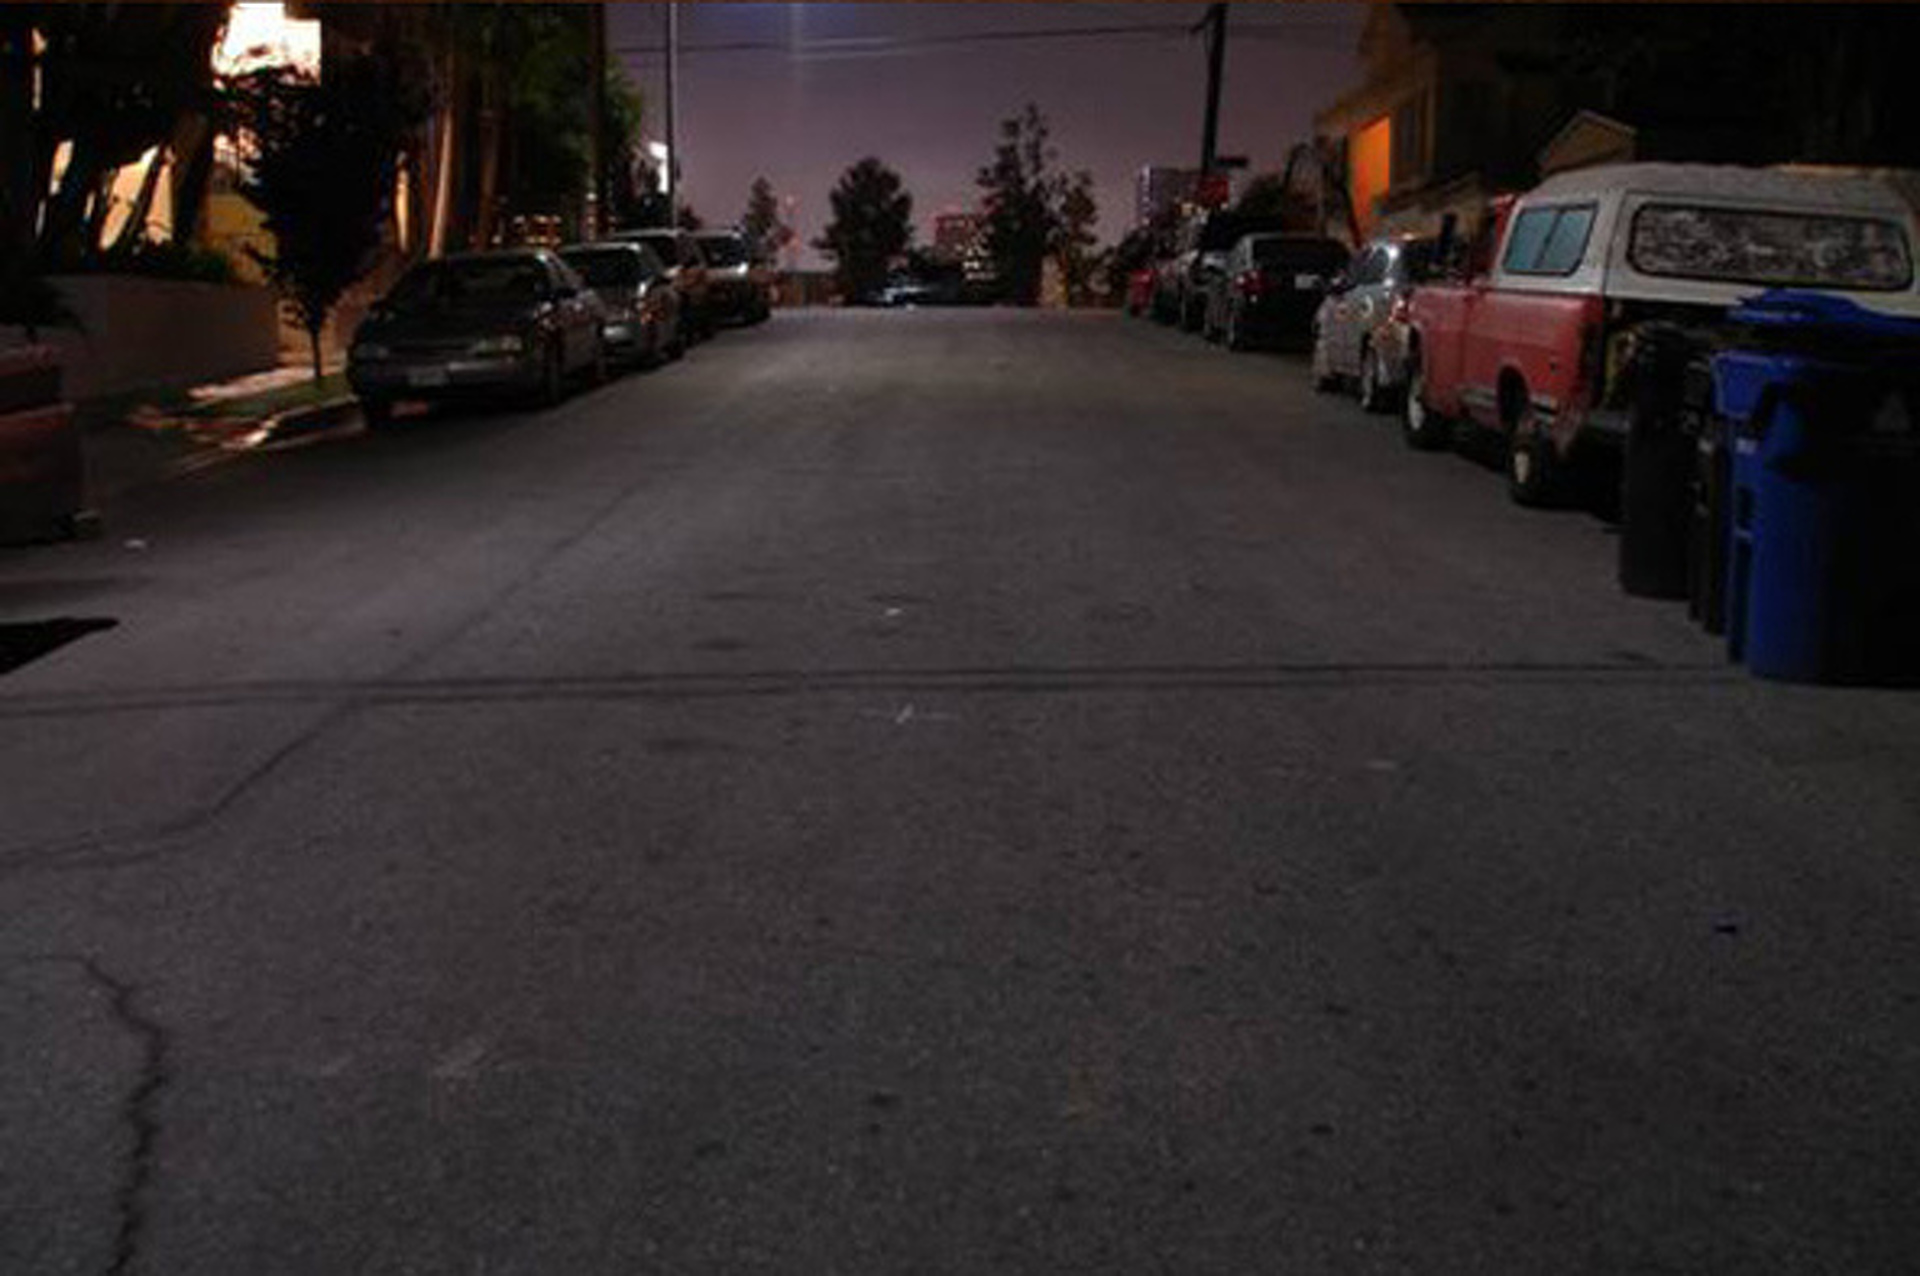 Will LED Streetlights Change the Way that We Drive at Night?